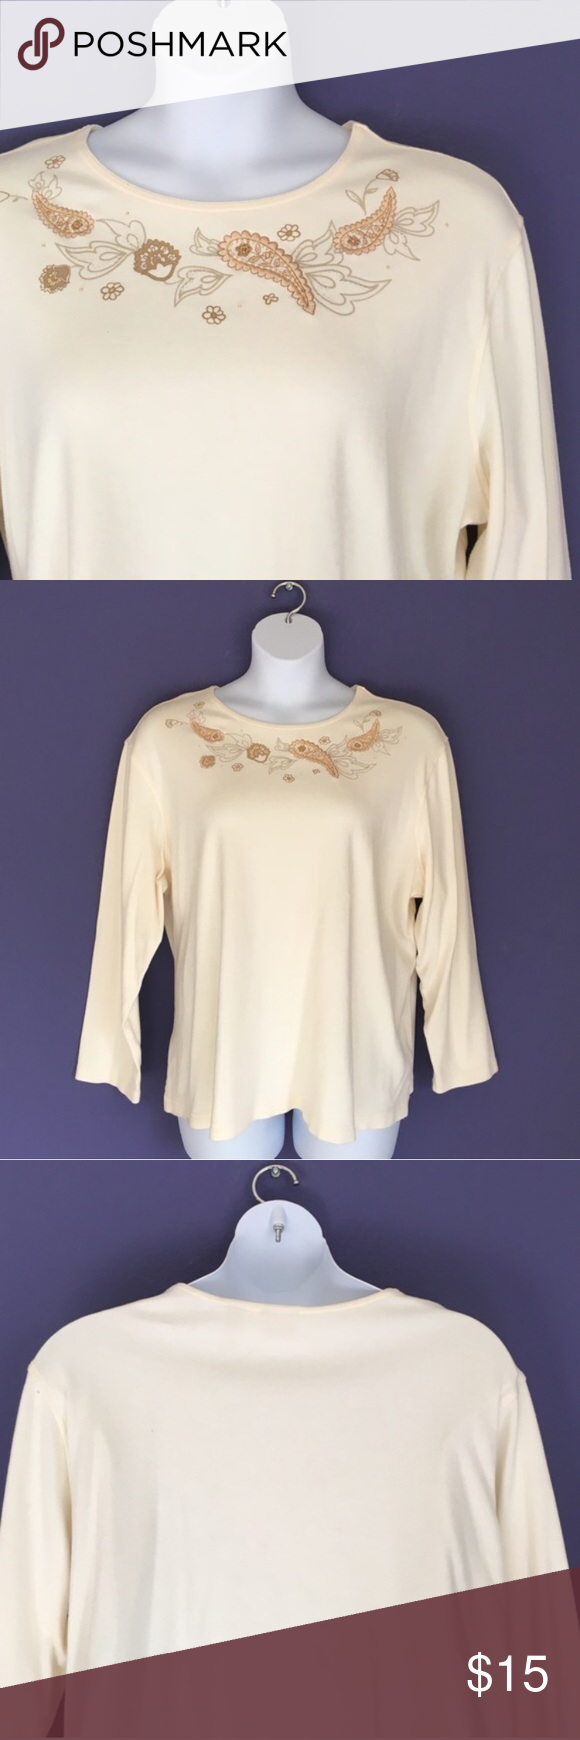 "Cream Shirt w/Embellished Neckline This casual and comfortable short is perfect for the weekend.  The embellished neckline adds a little fun.  Wear with jeans and relax.  Material:  100% Cotton. Measurements:  Length - 26""/Bust - 27"" Classic Elements Tops"